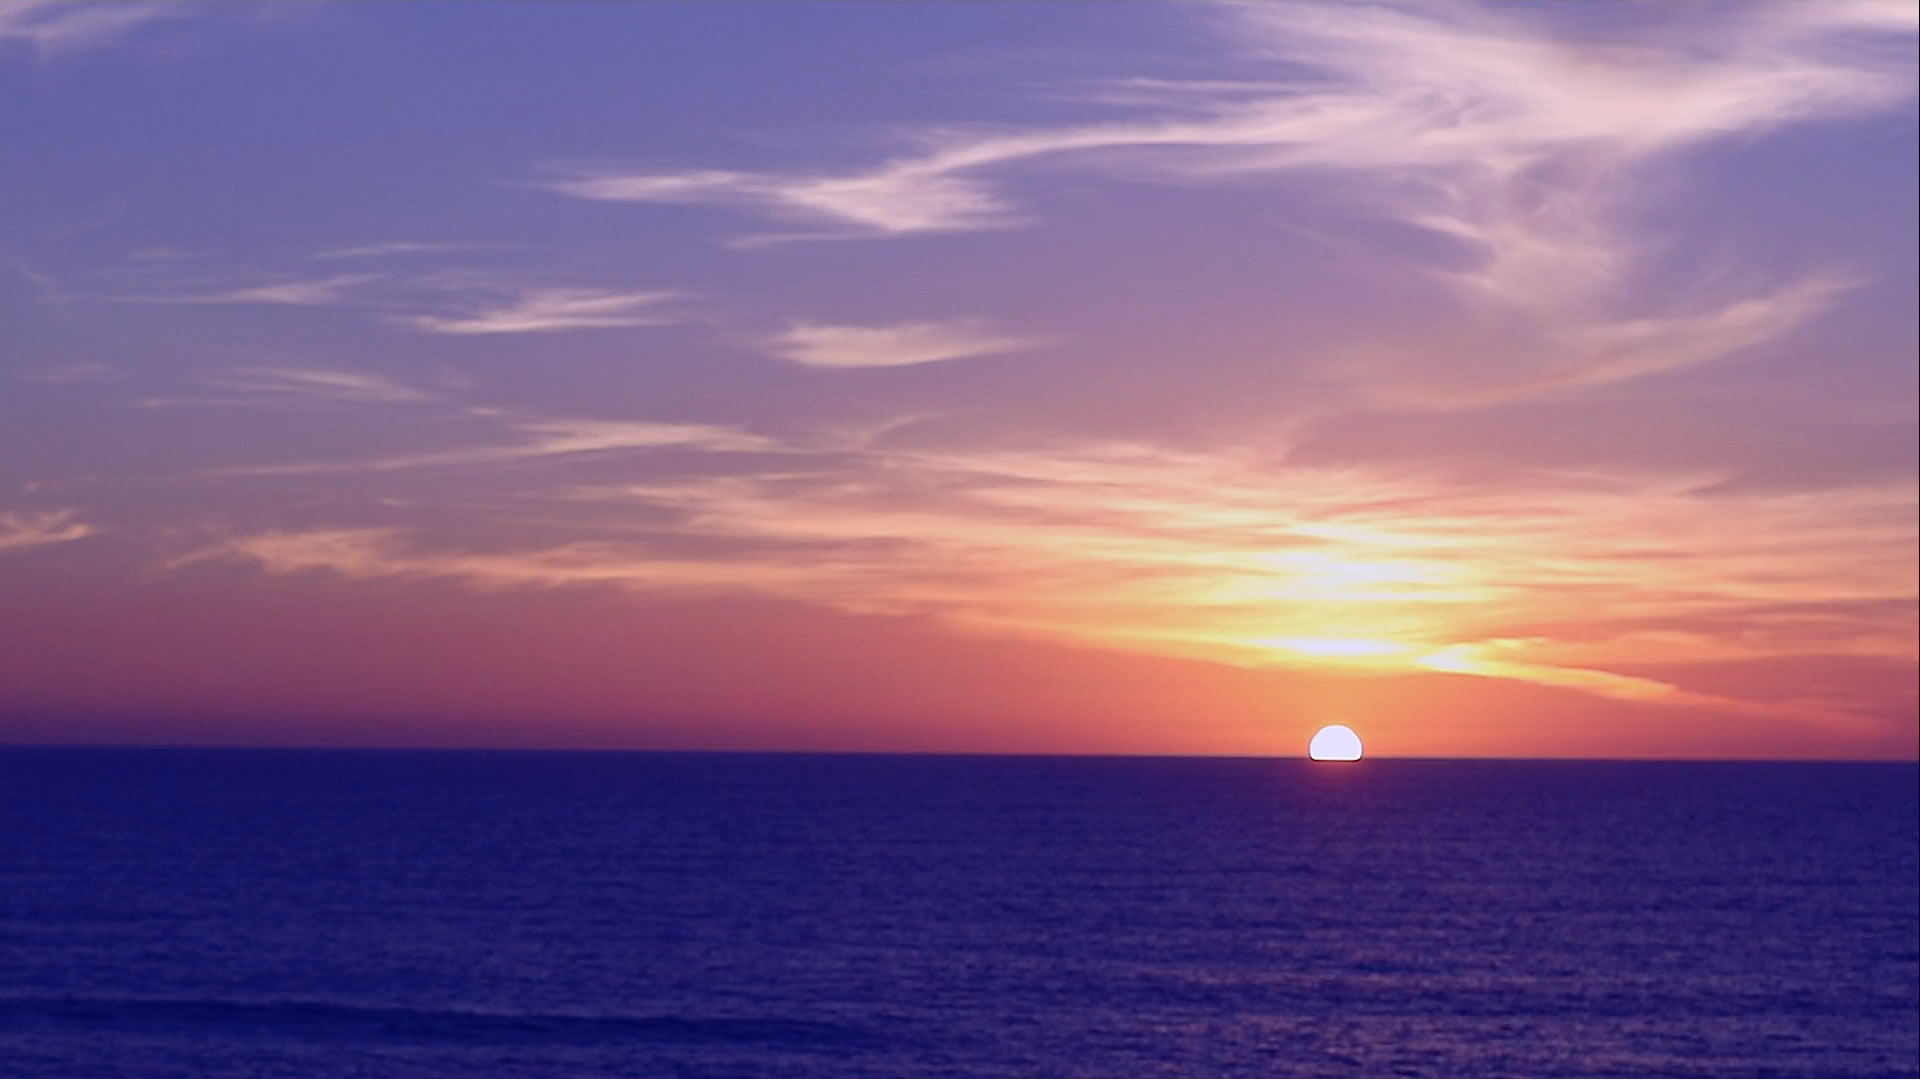 Ocean Sunset Background Video - MusicTruth - Background Videos